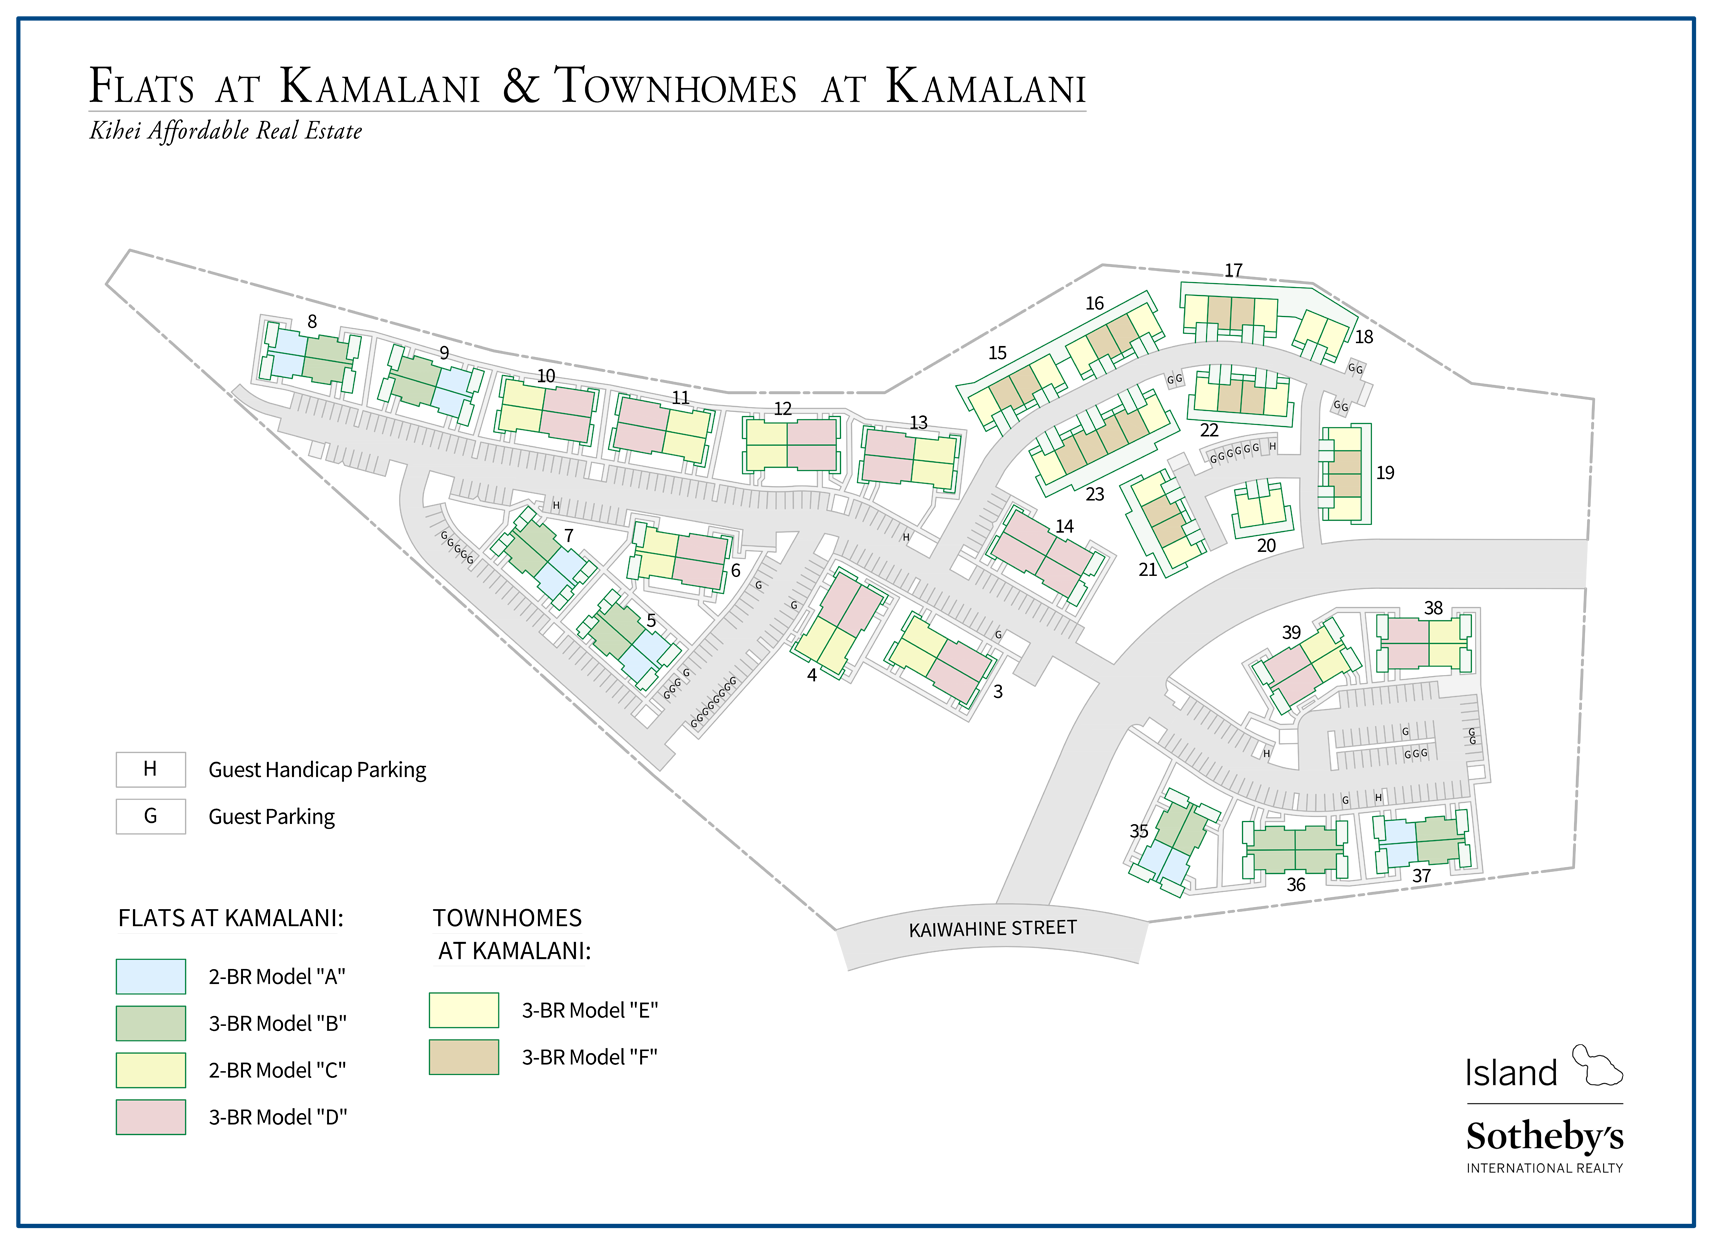 kamalani map kihei